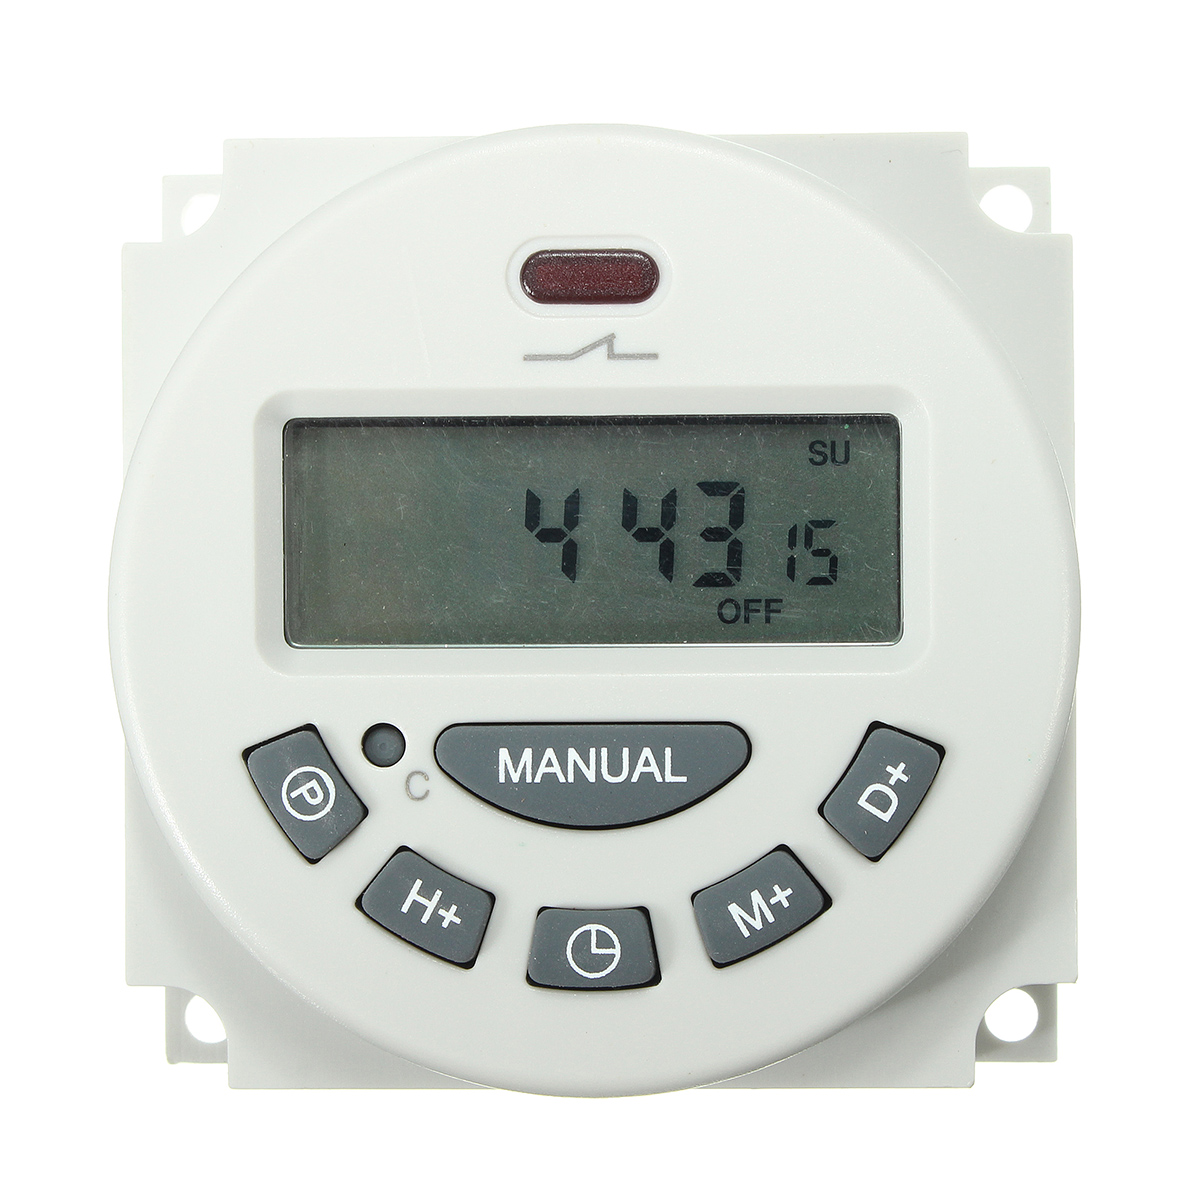 Excellway L701 12V/110V/220V LCD Digital Programmable Control Power Timer Switch Time Relay